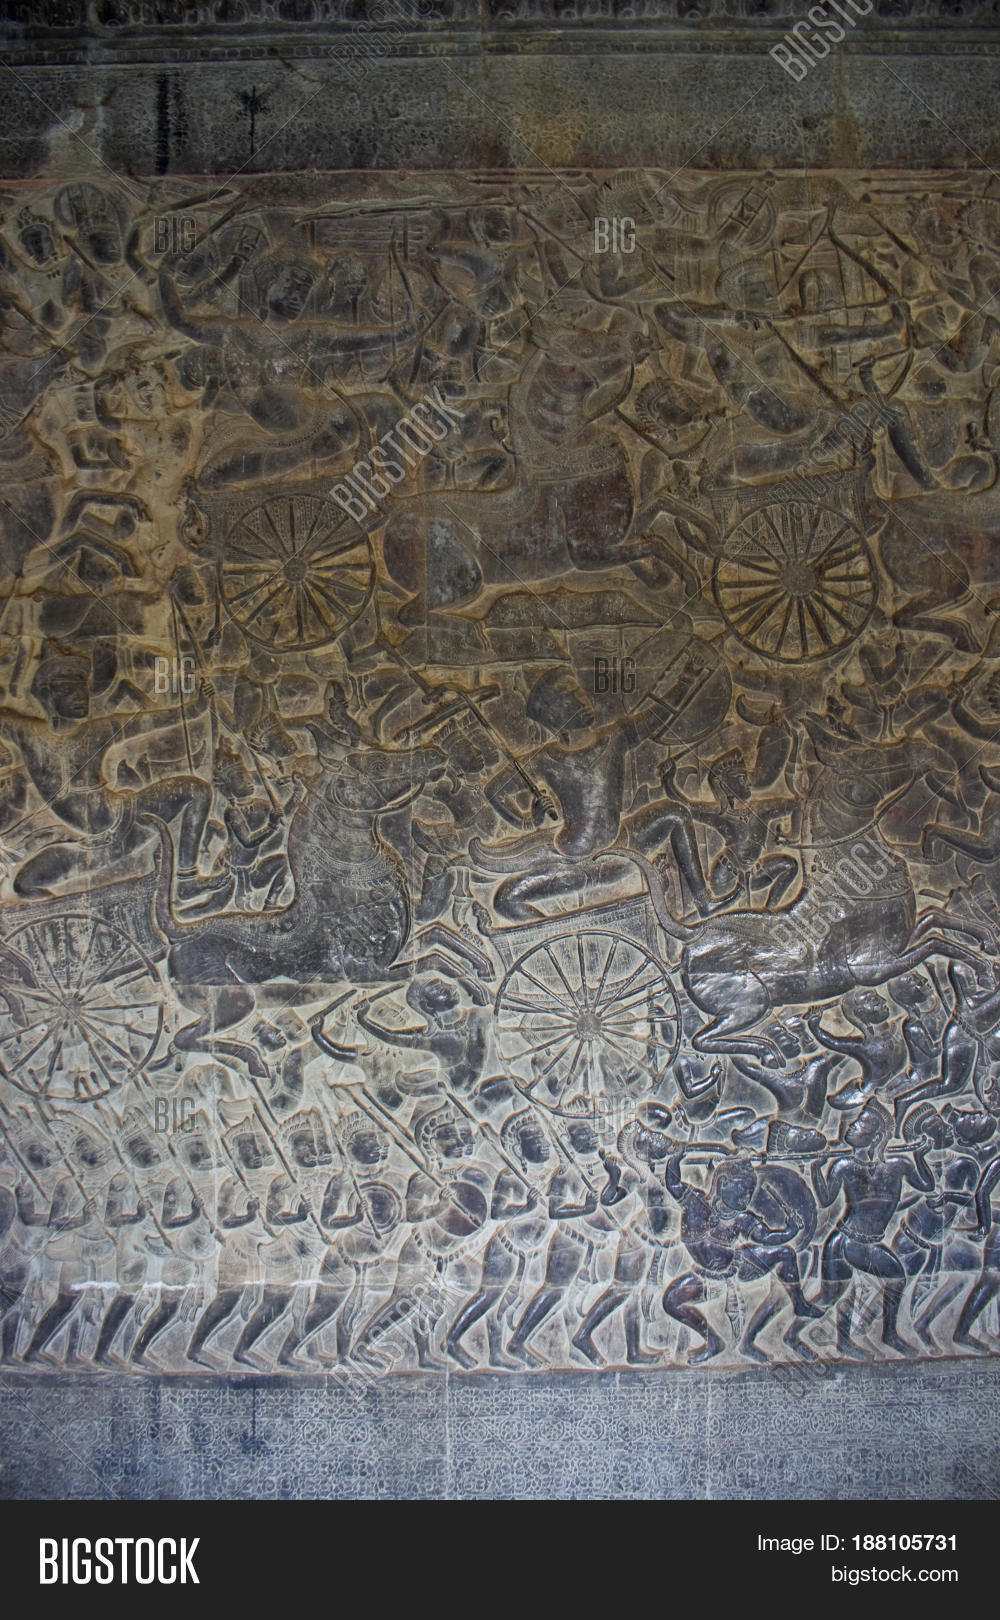 Relief carving angkor wat temple image photo bigstock